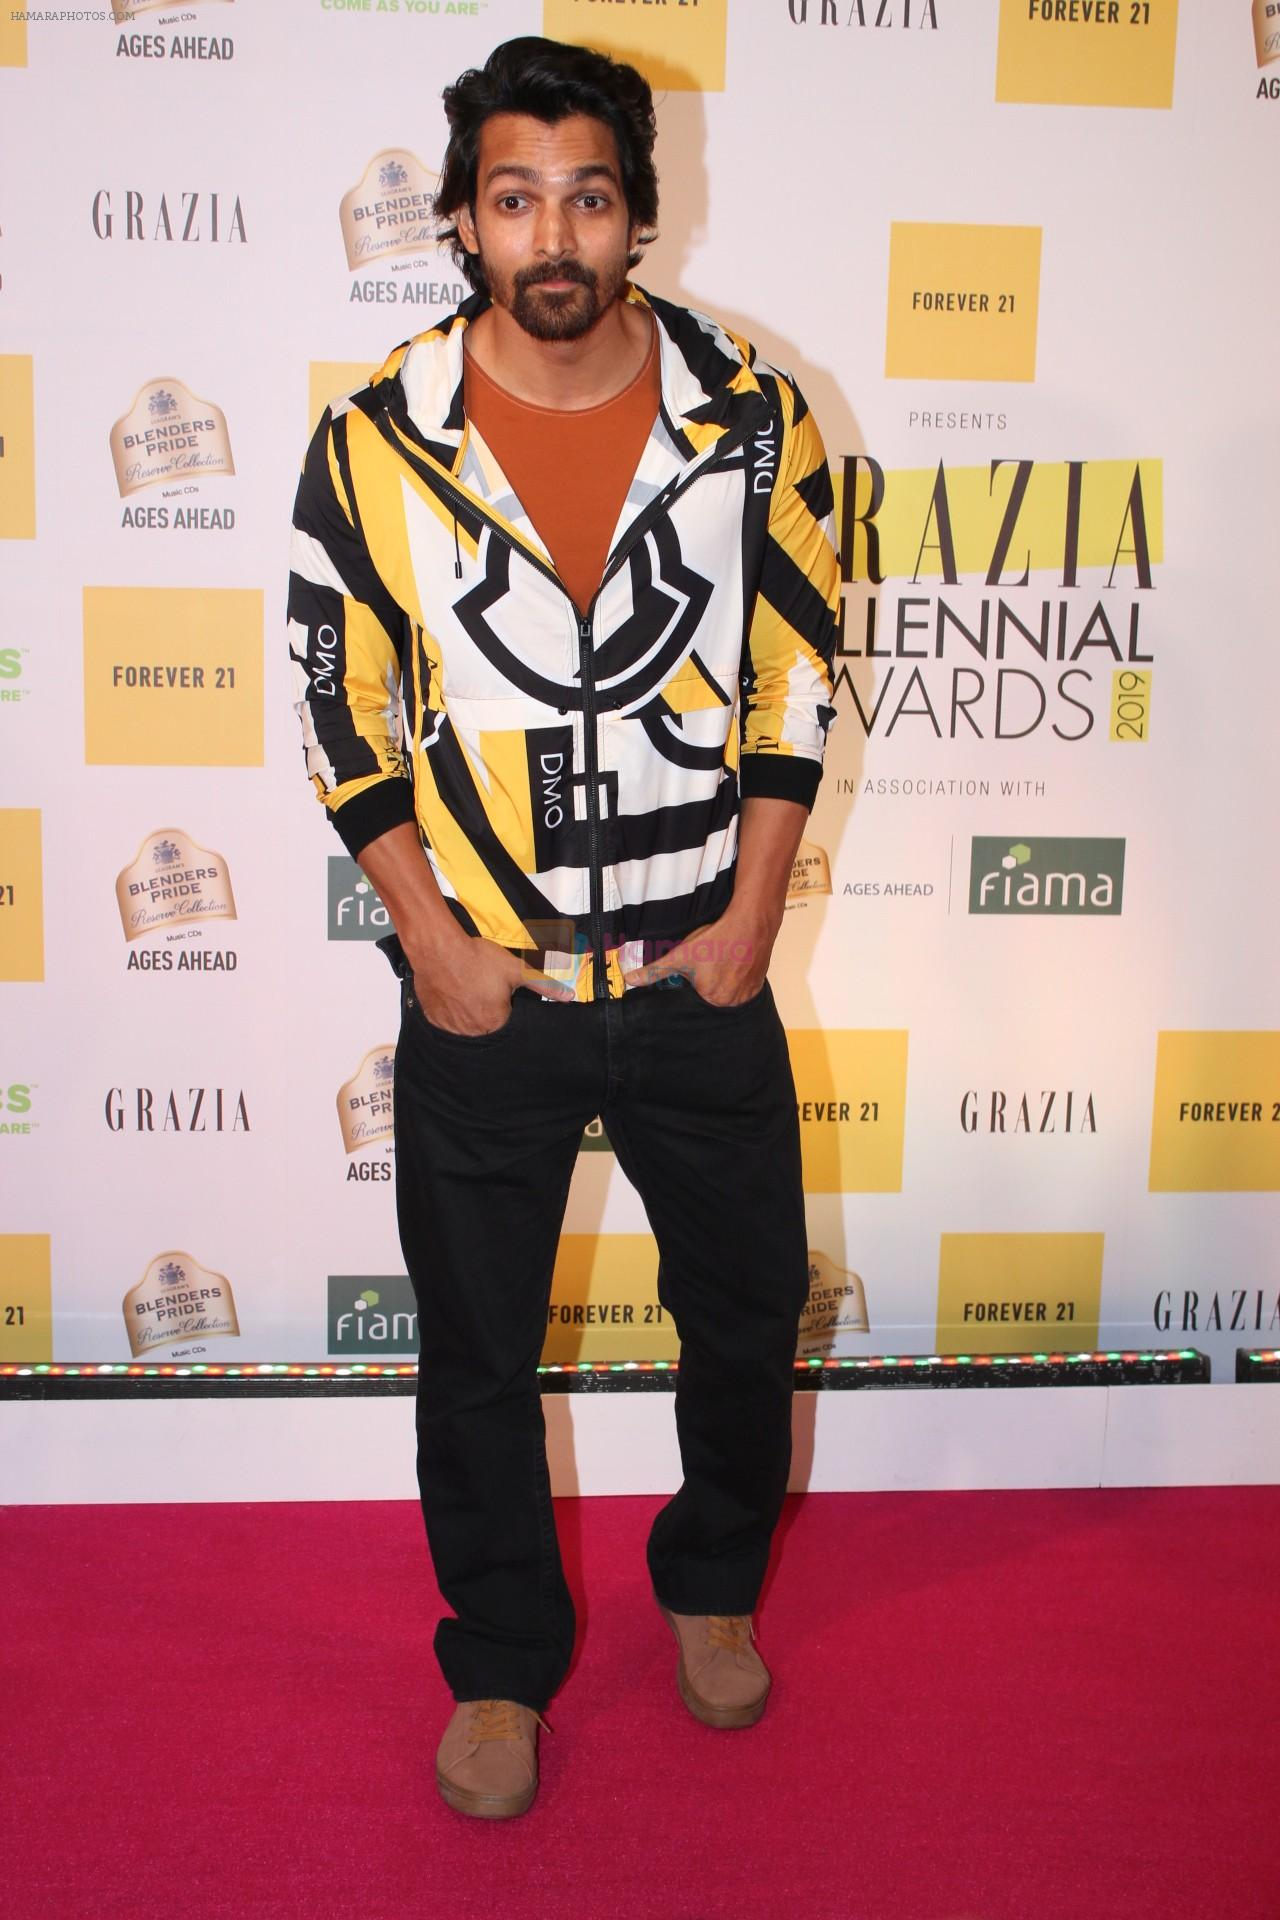 Harshvardhan Rane at the Red Carpet of 1st Edition of Grazia Millennial Awards on 19th June 2019 on 19th June 2019